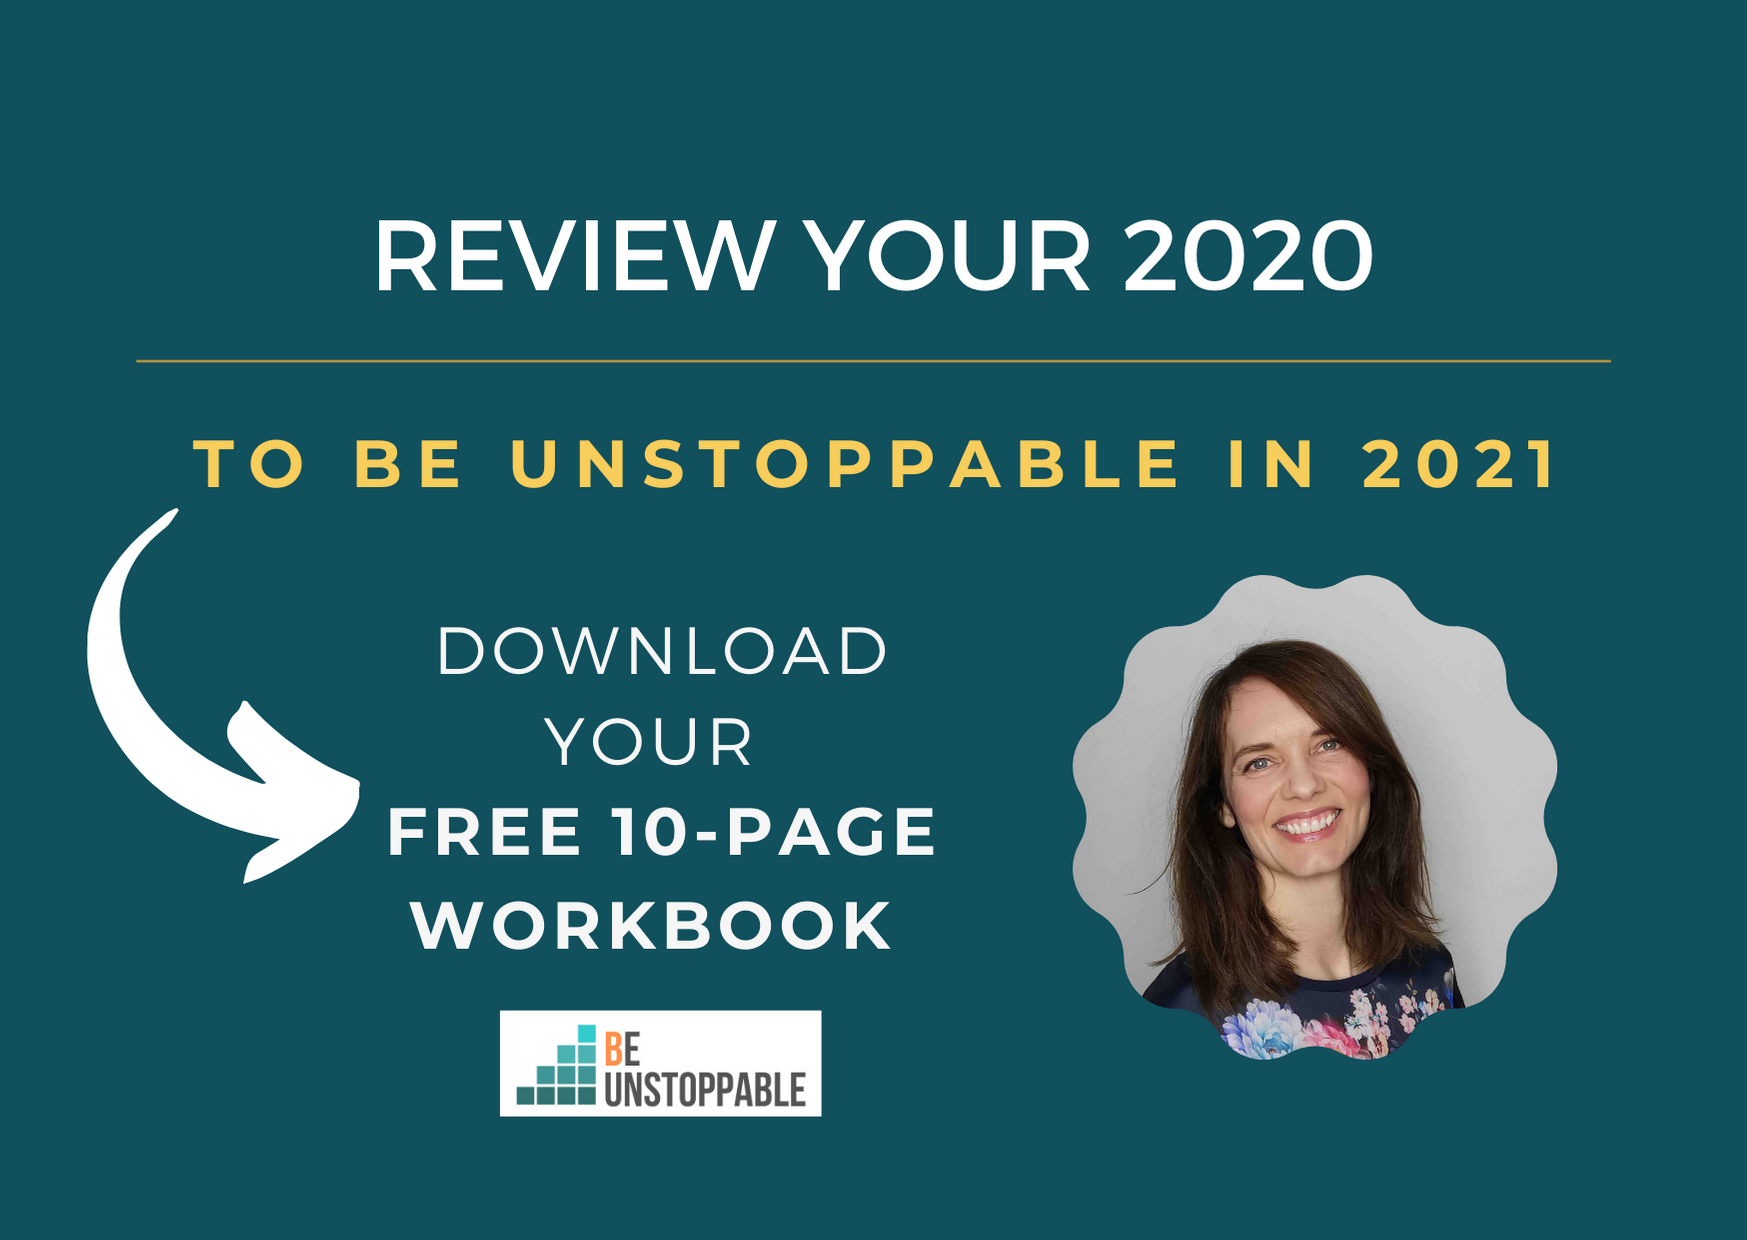 Review Your 2020 to Be Unstoppable in 2021